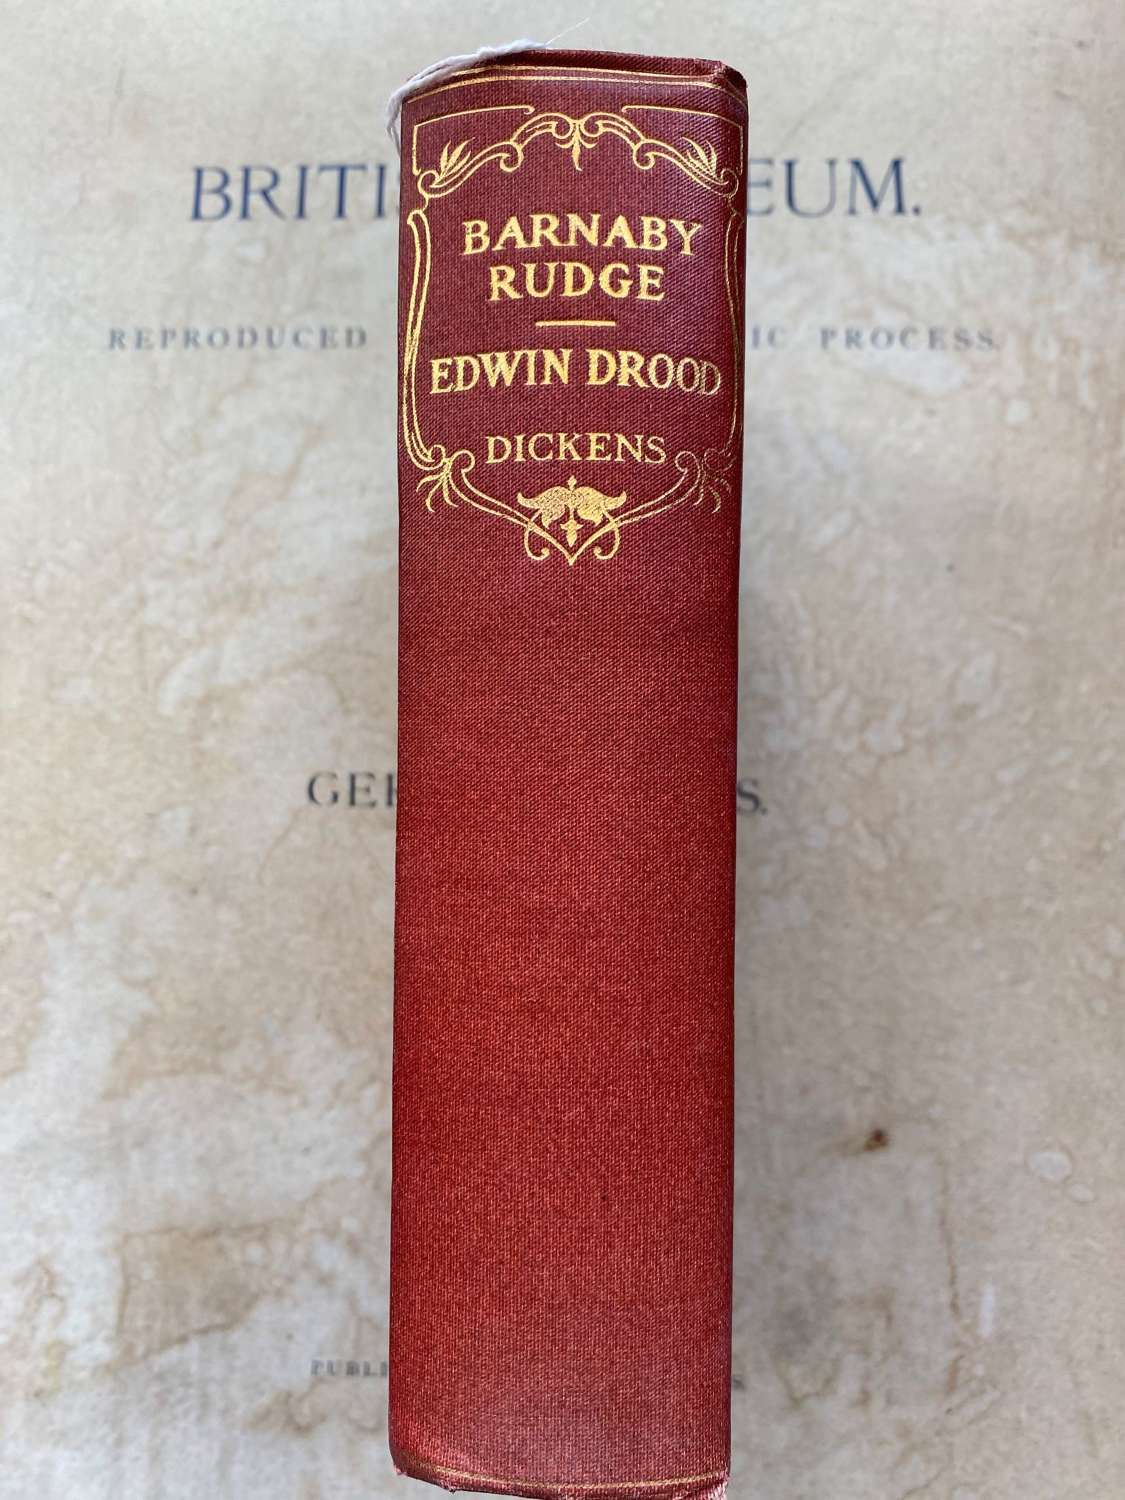 Barnaby Rudge & Edwin Drood by Charles Dickens